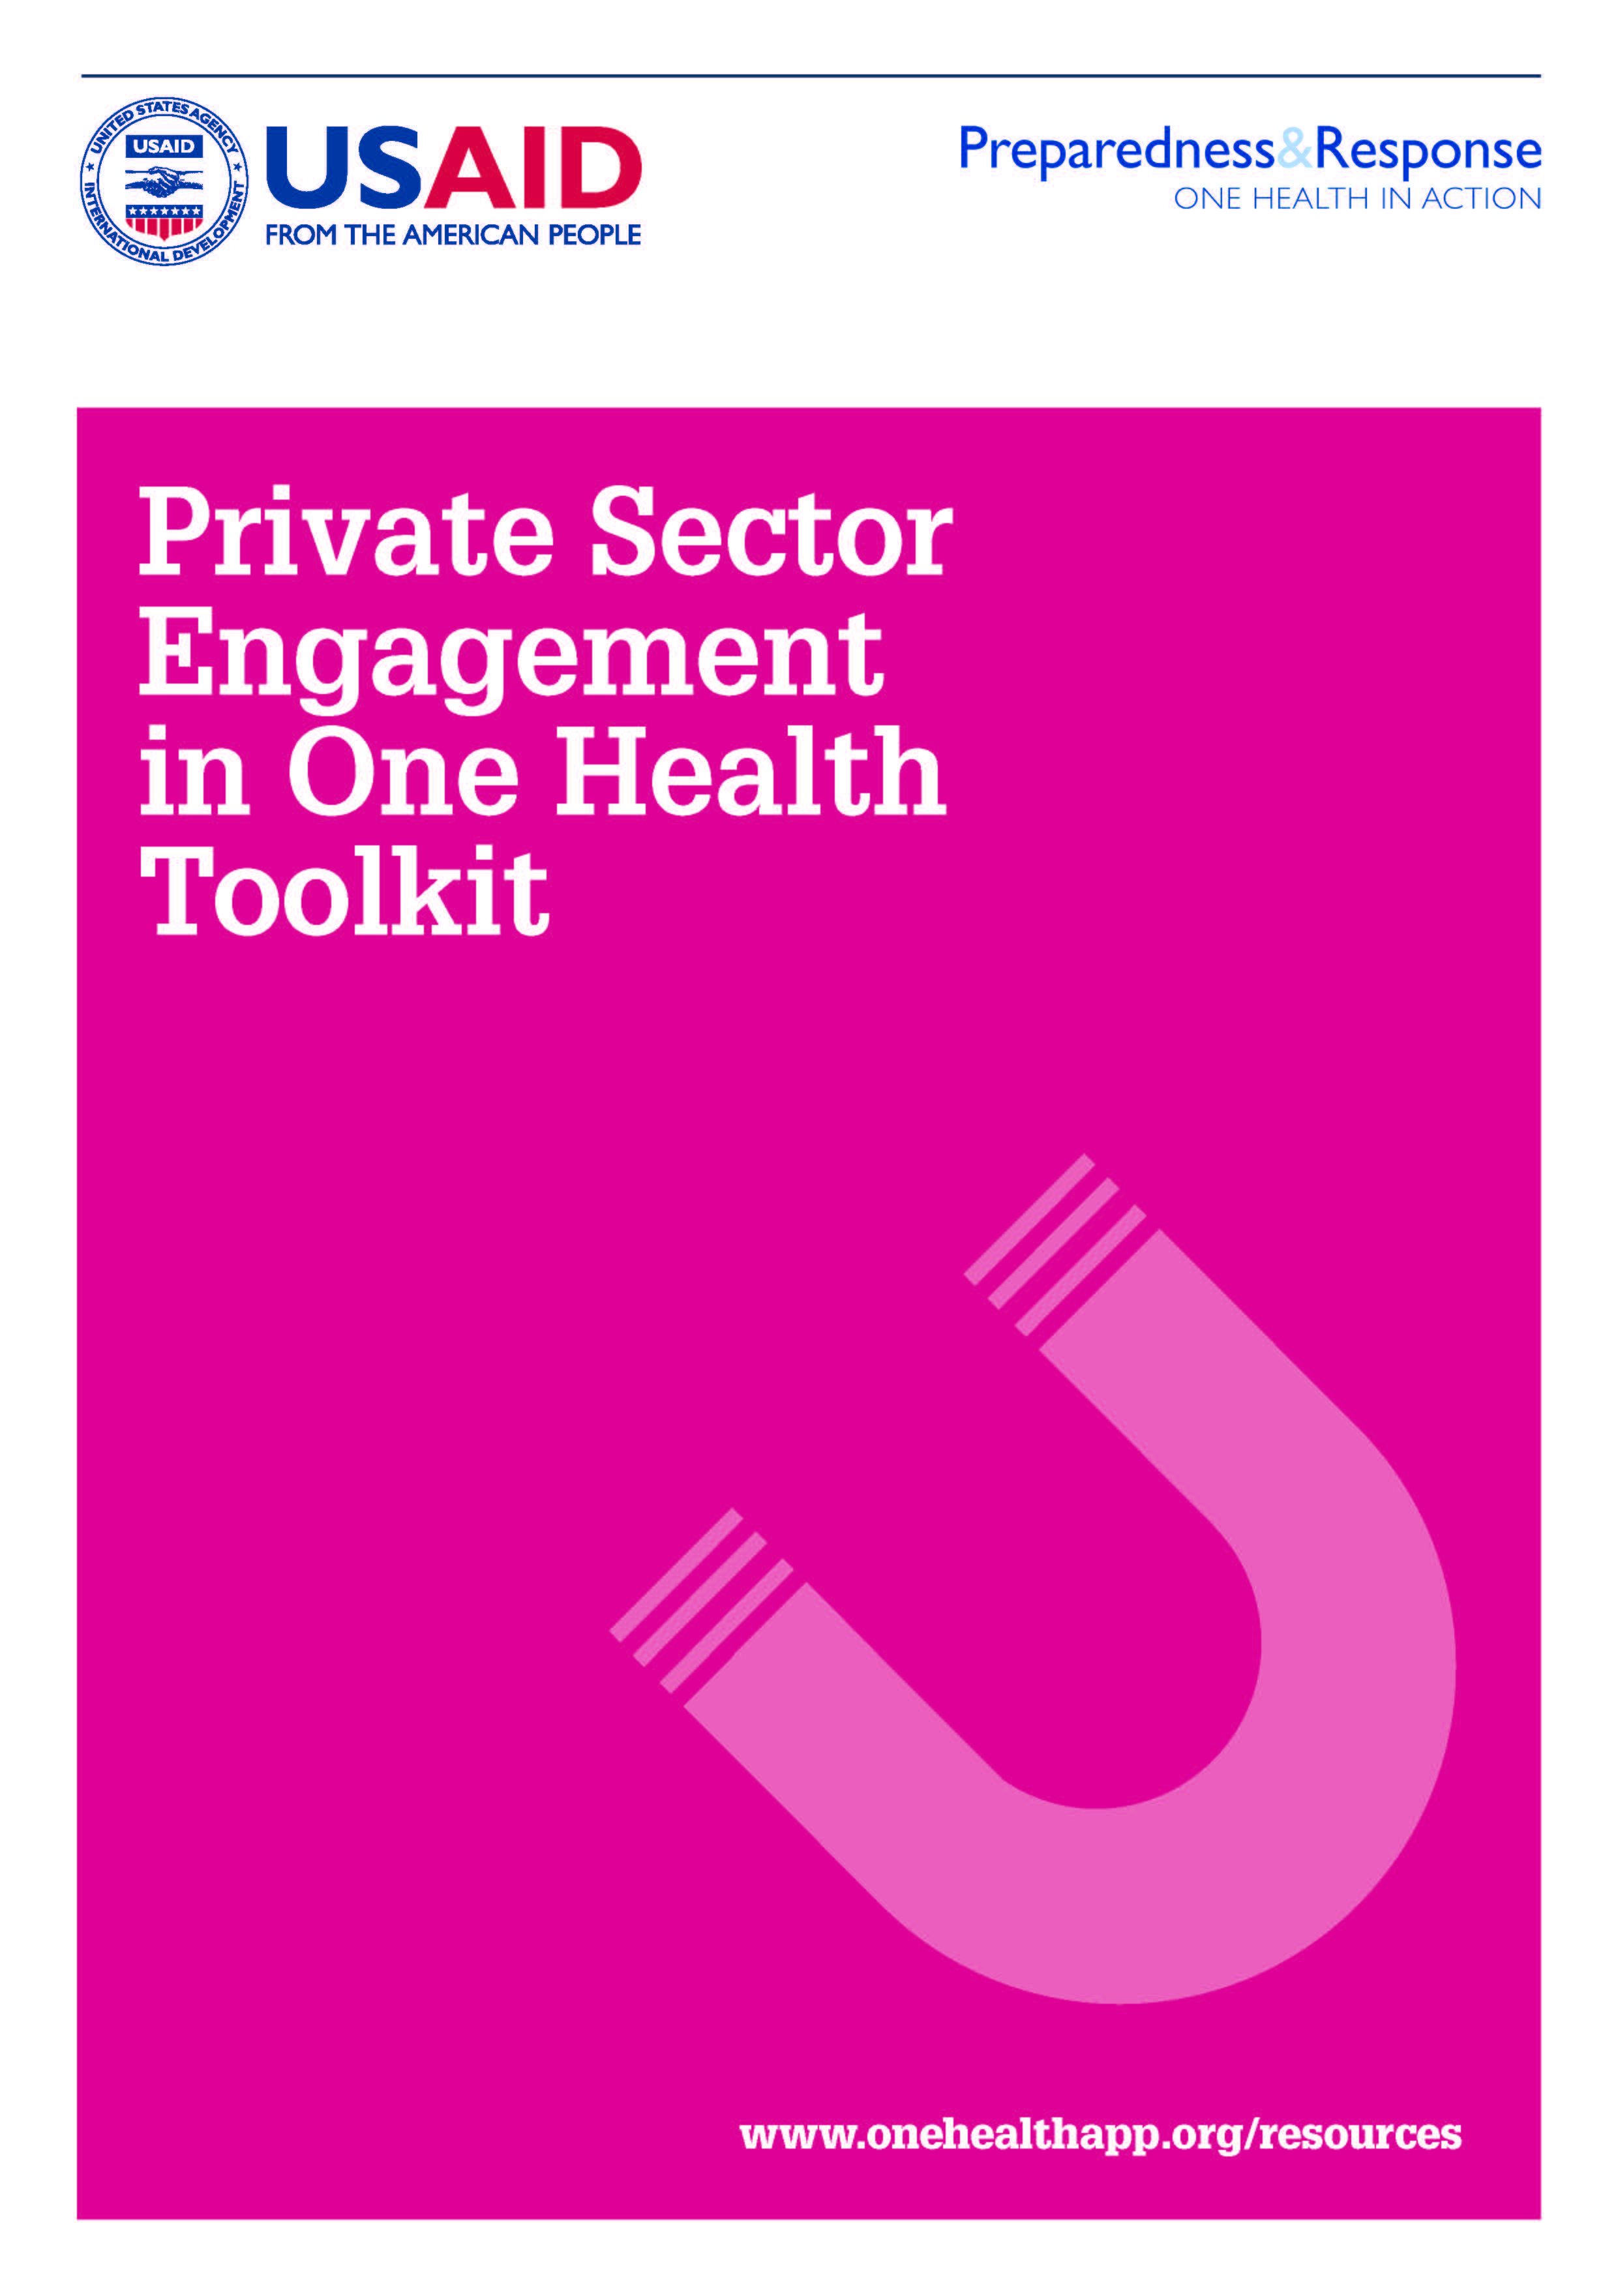 Private Sector Engagement Toolkit